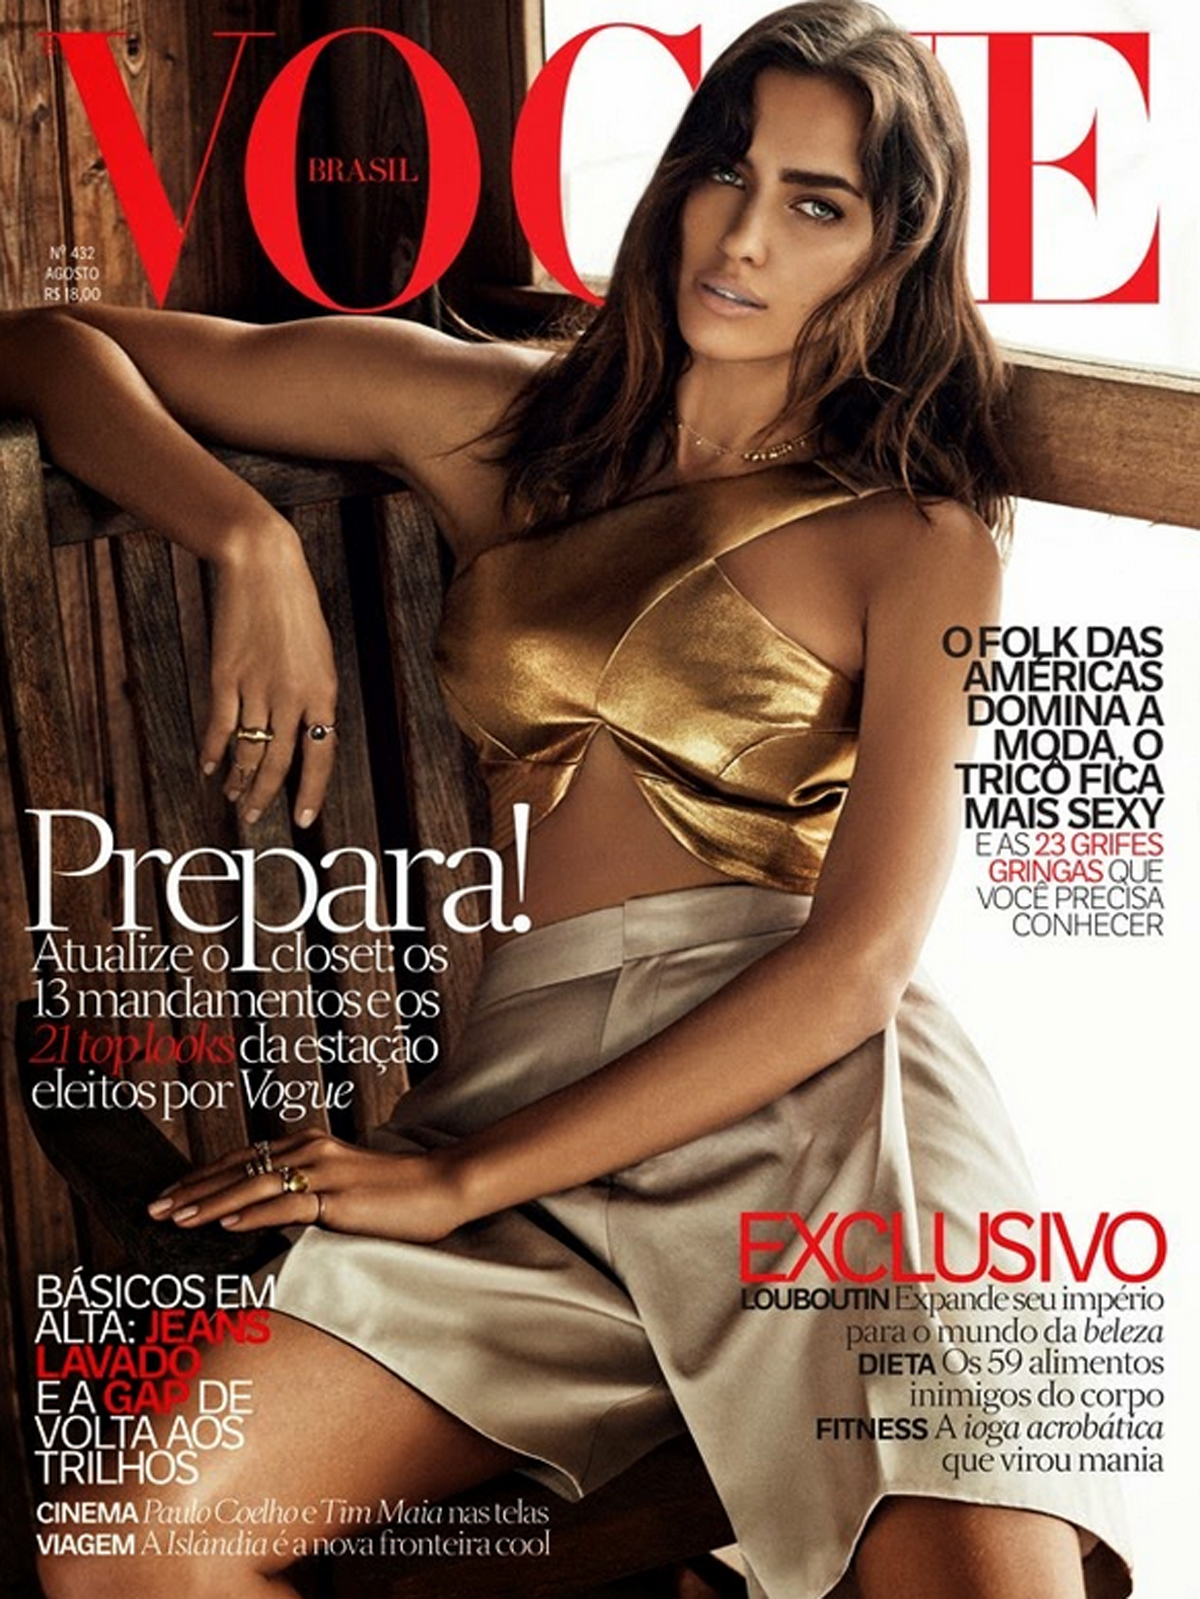 Vogue Brasil, August 2014